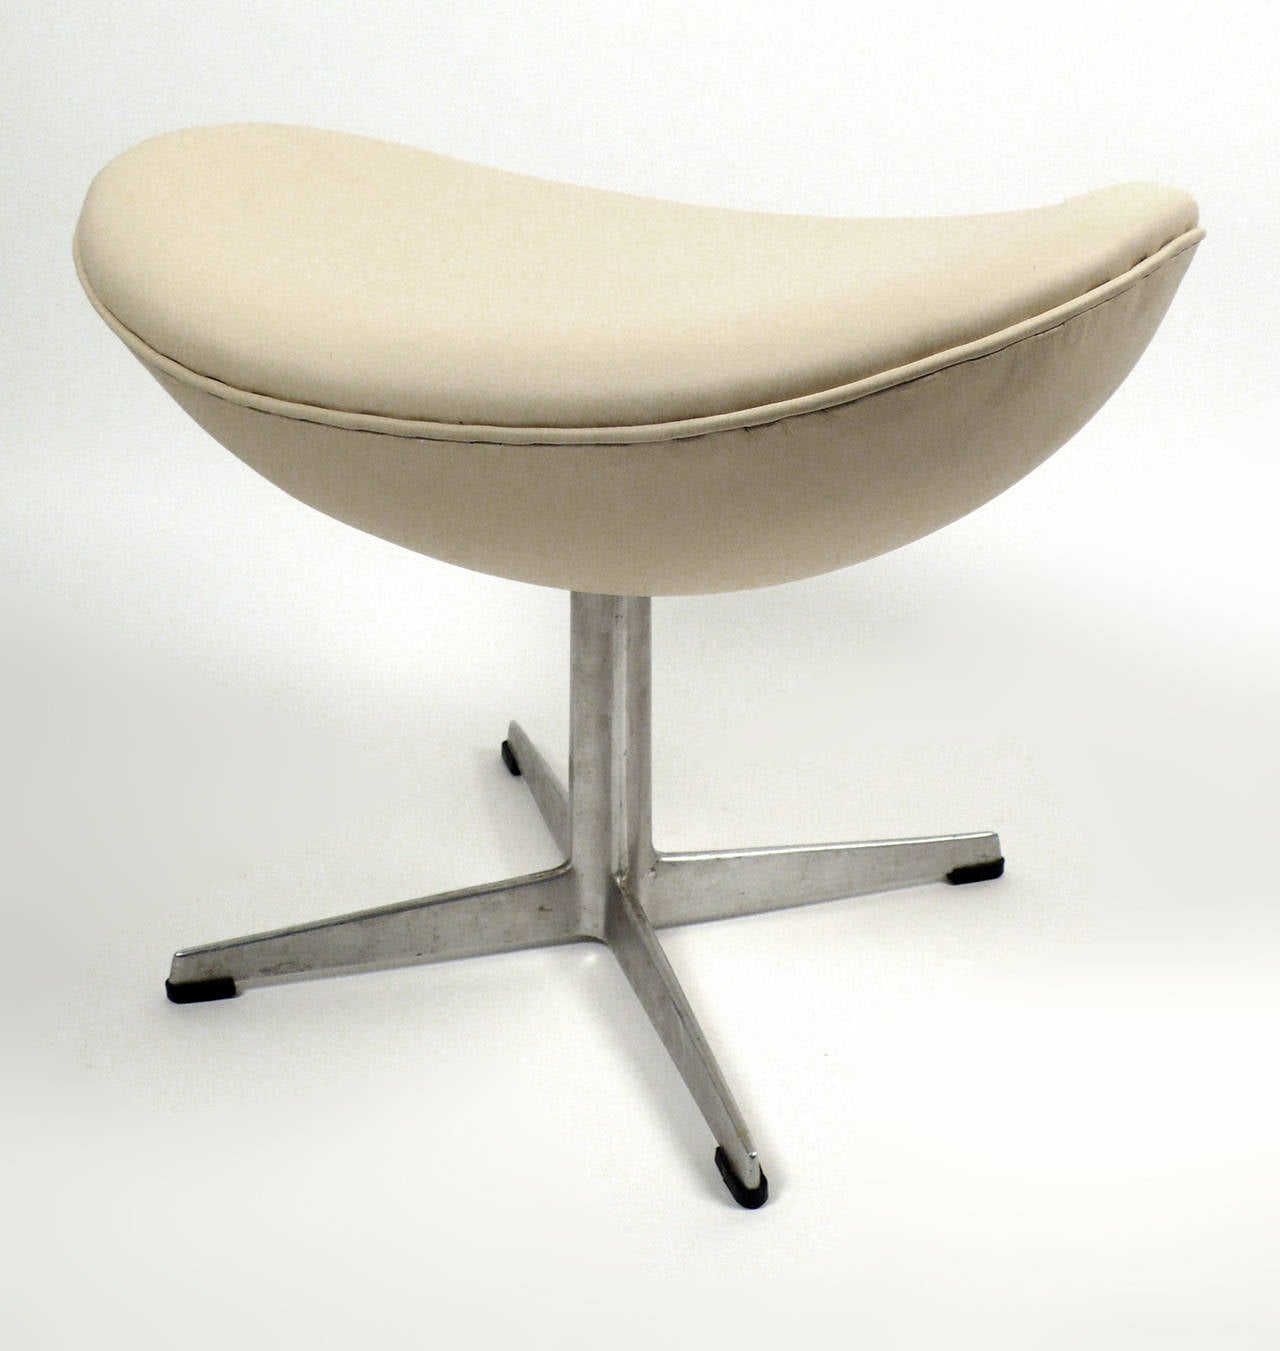 Early Production Leather Egg Chair With Matching Ottoman By Arne Jacobsen At